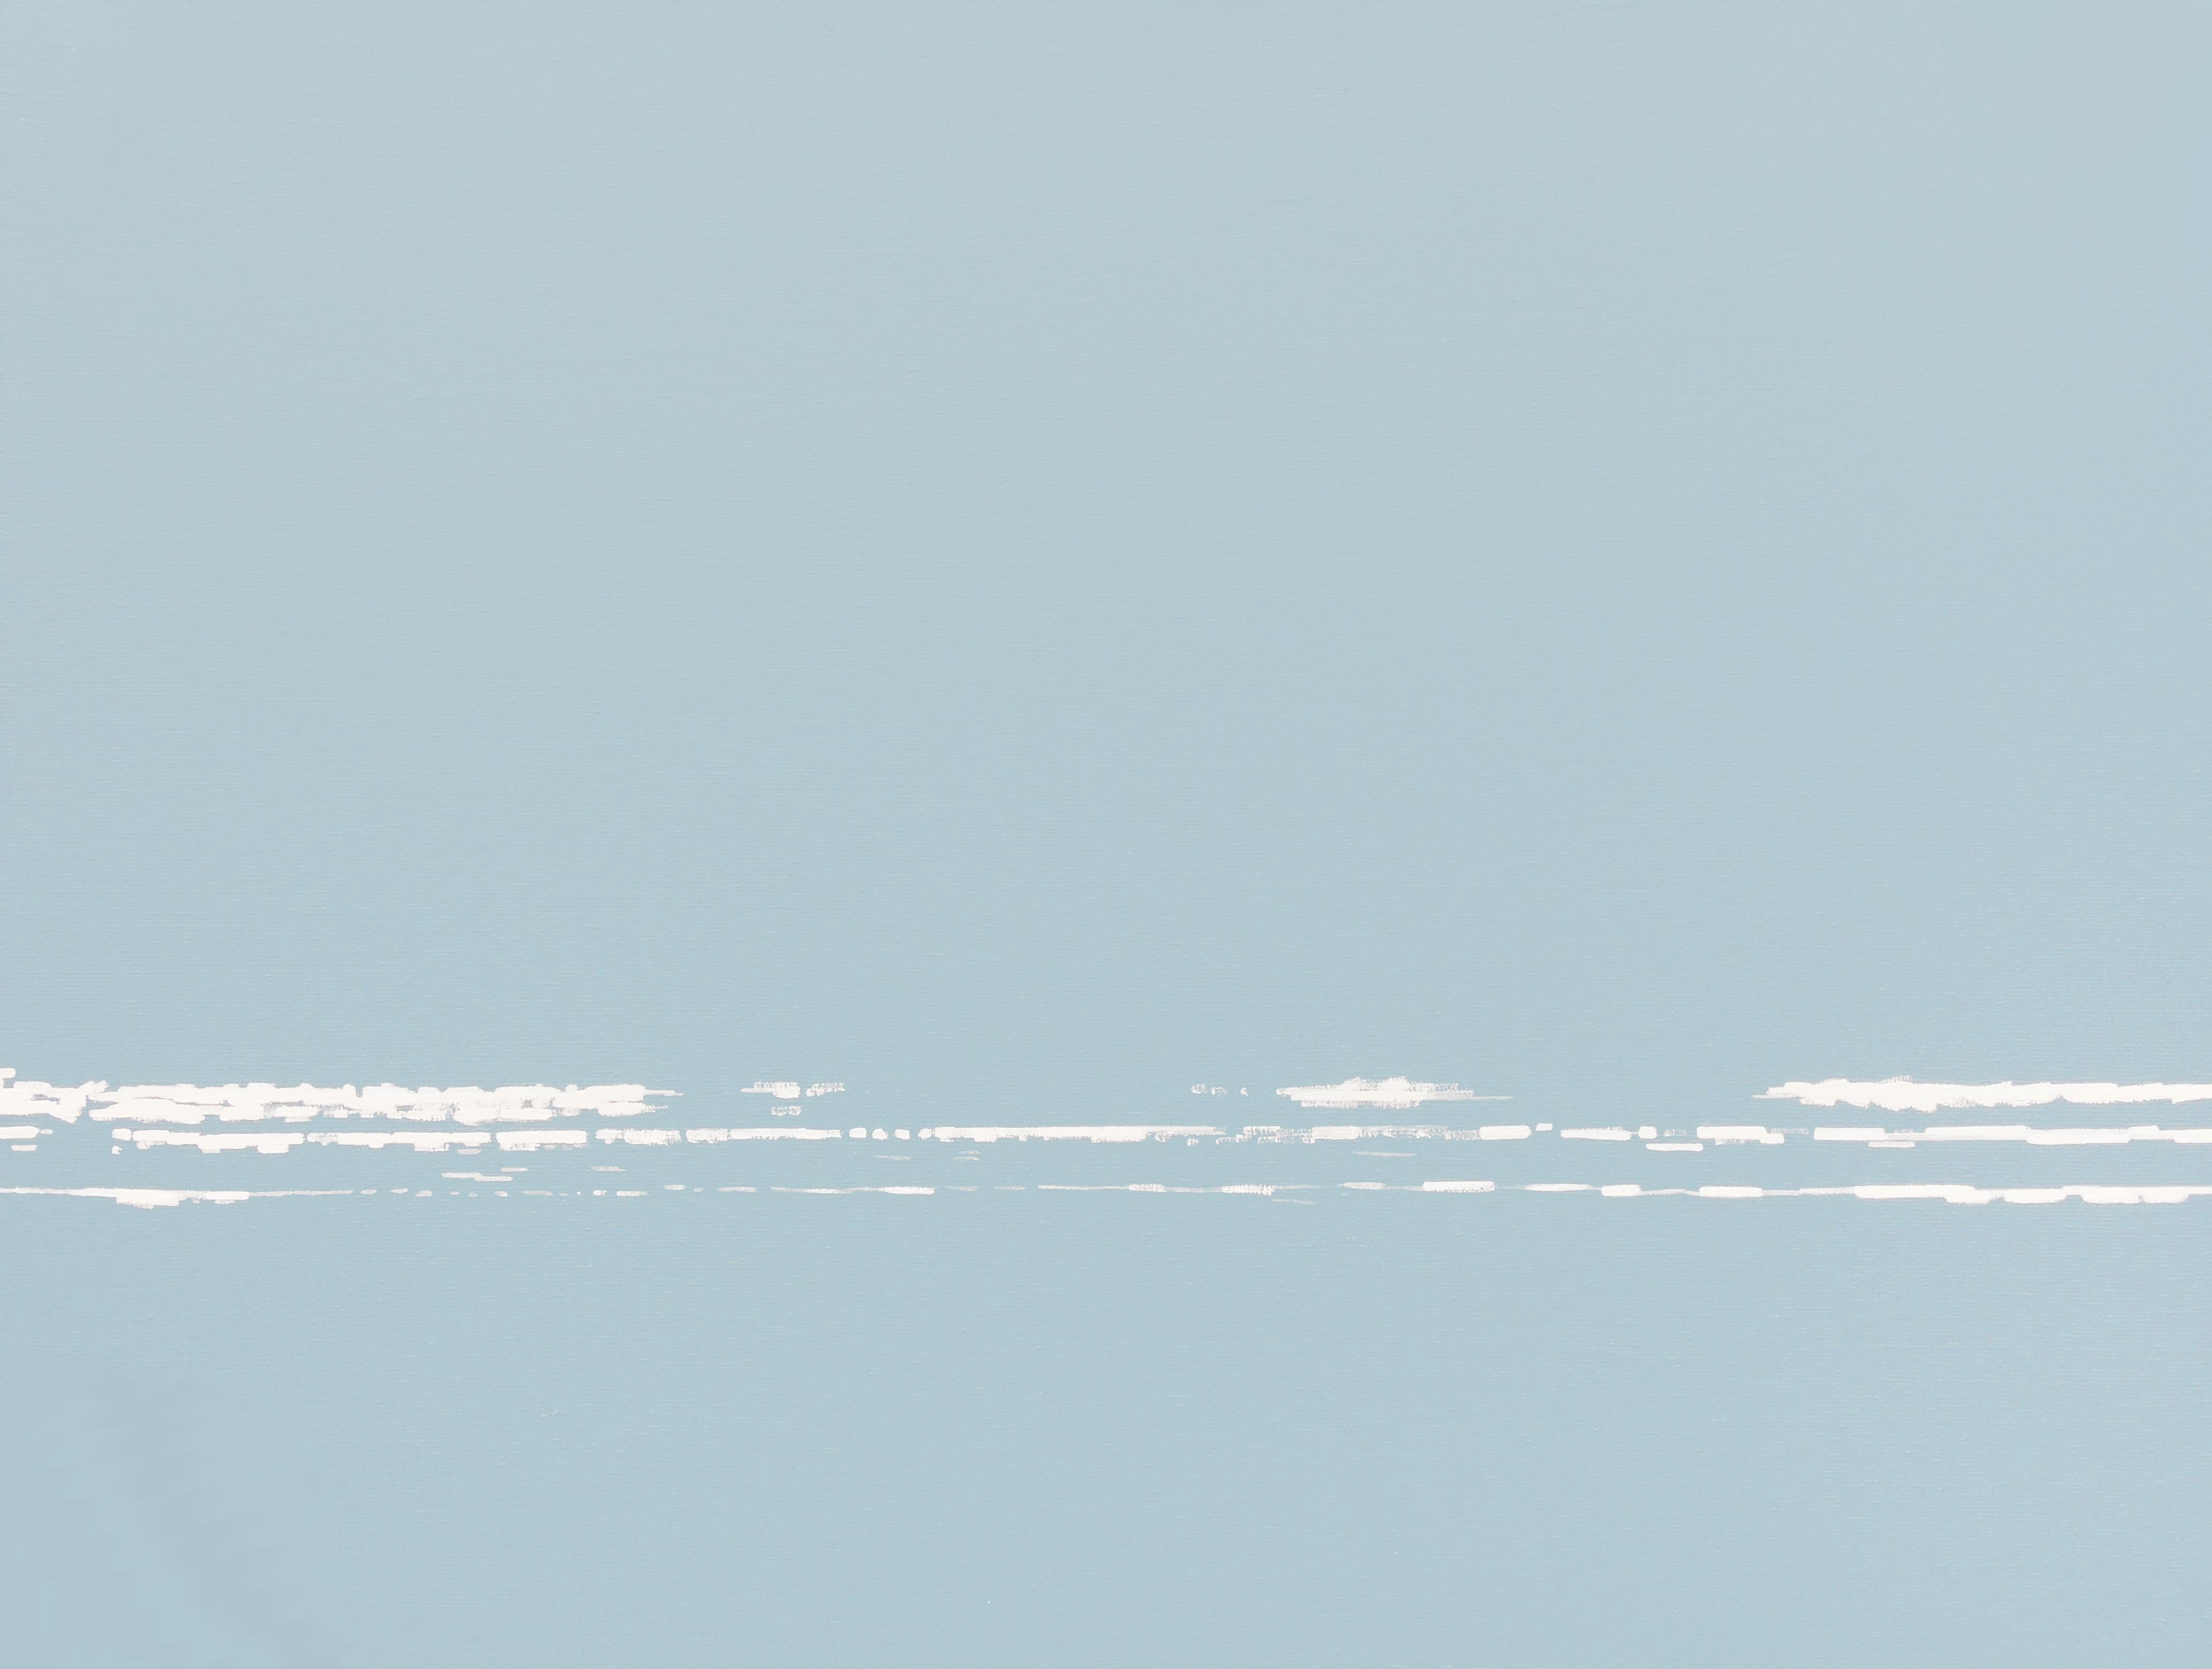 Waves 28 May 10:02, Contemporary Landscape Painting, Minimalistic, Water View